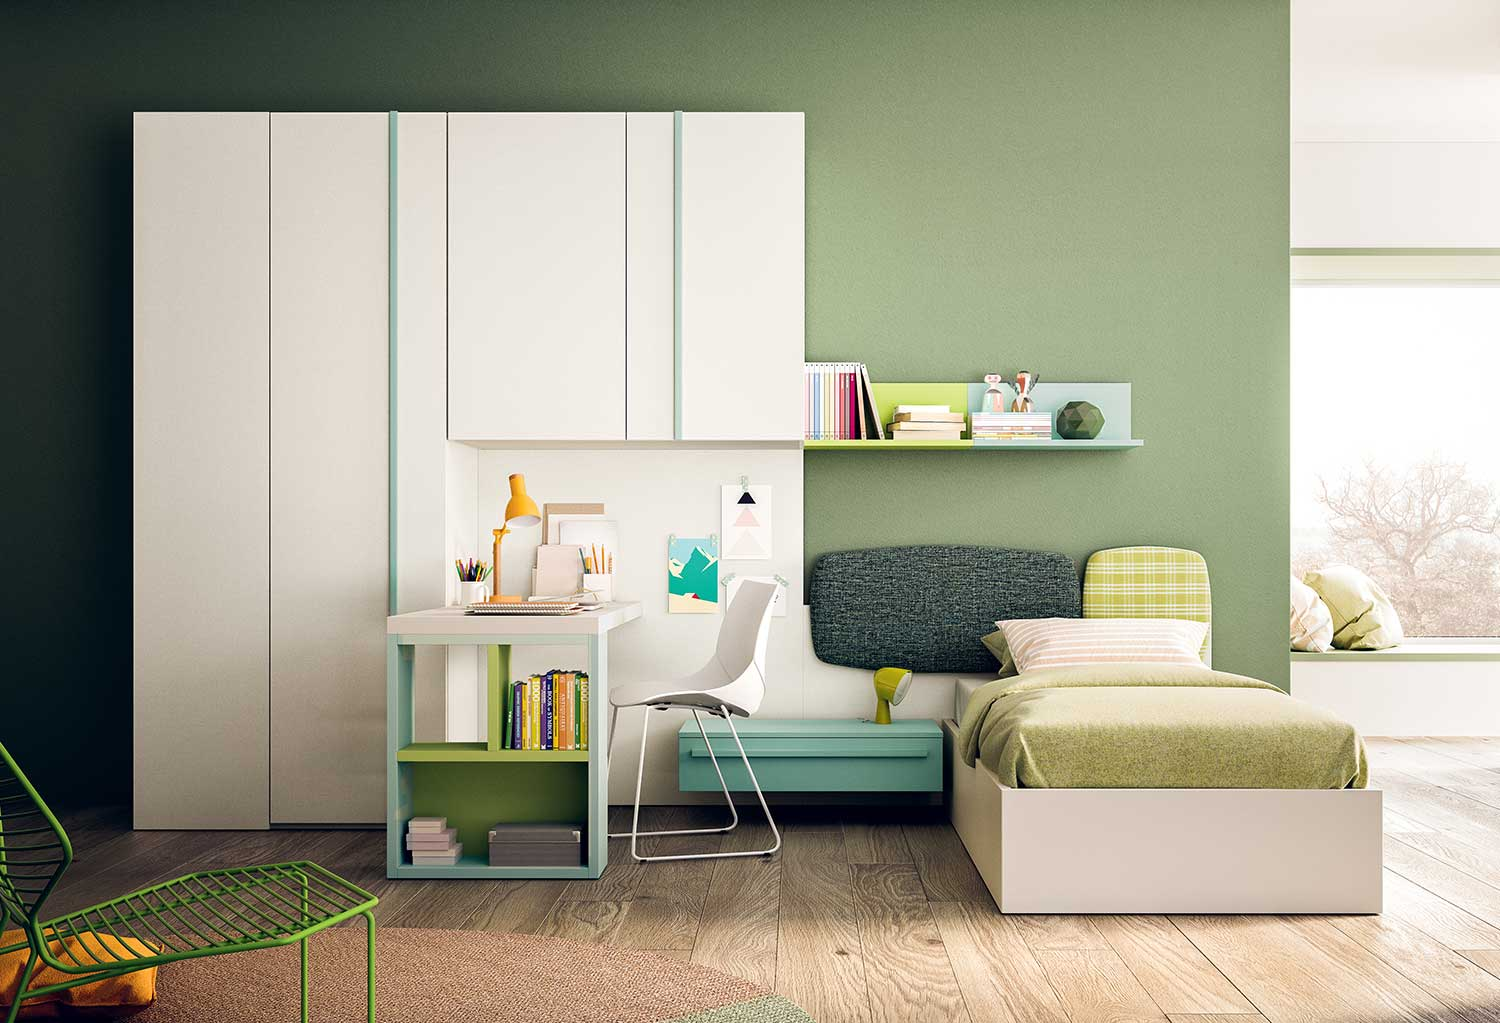 Start P18 is a great solution for a small bedroom for one child